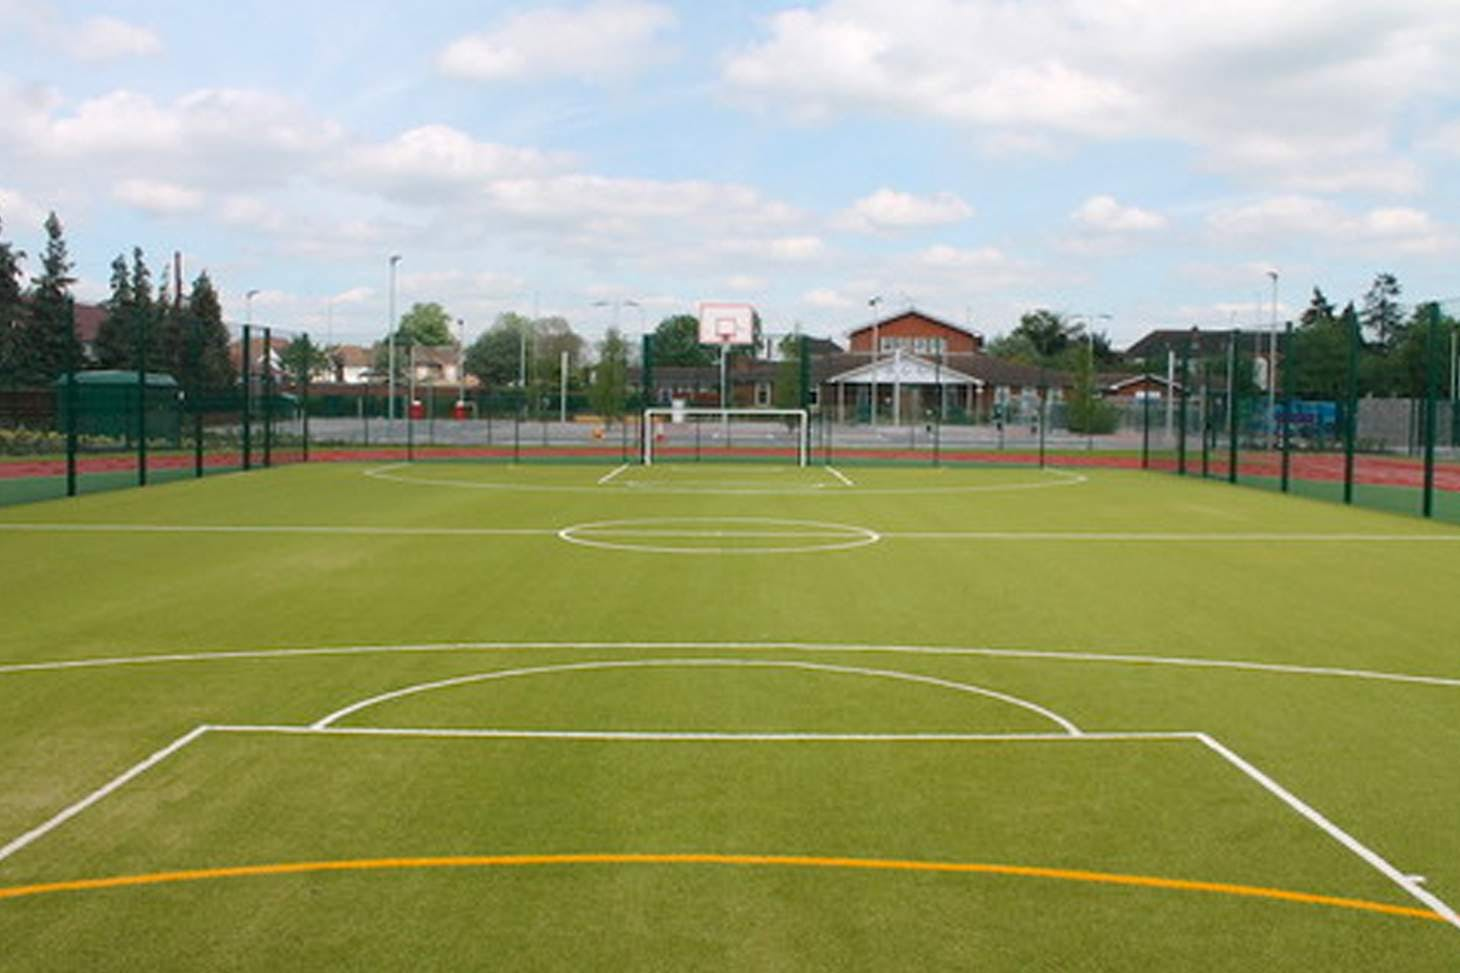 Oaklands School Training pitch | Sand-based Astroturf rugby pitch